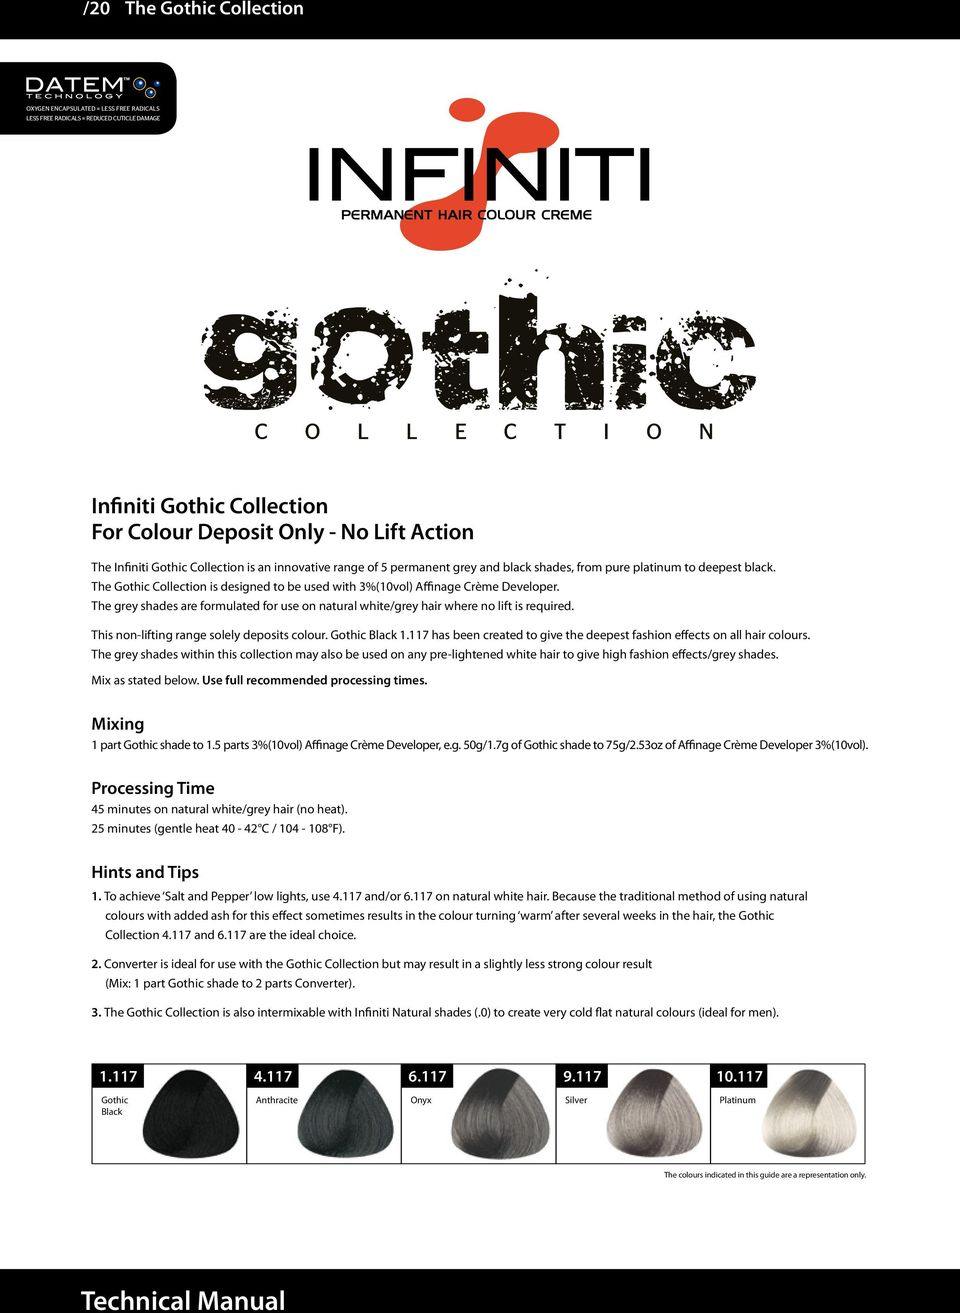 The Gothic Collection is designed to be used with 3%(10vol) Affinage Crème Developer. The grey shades are formulated for use on natural white/grey hair where no lift is required.